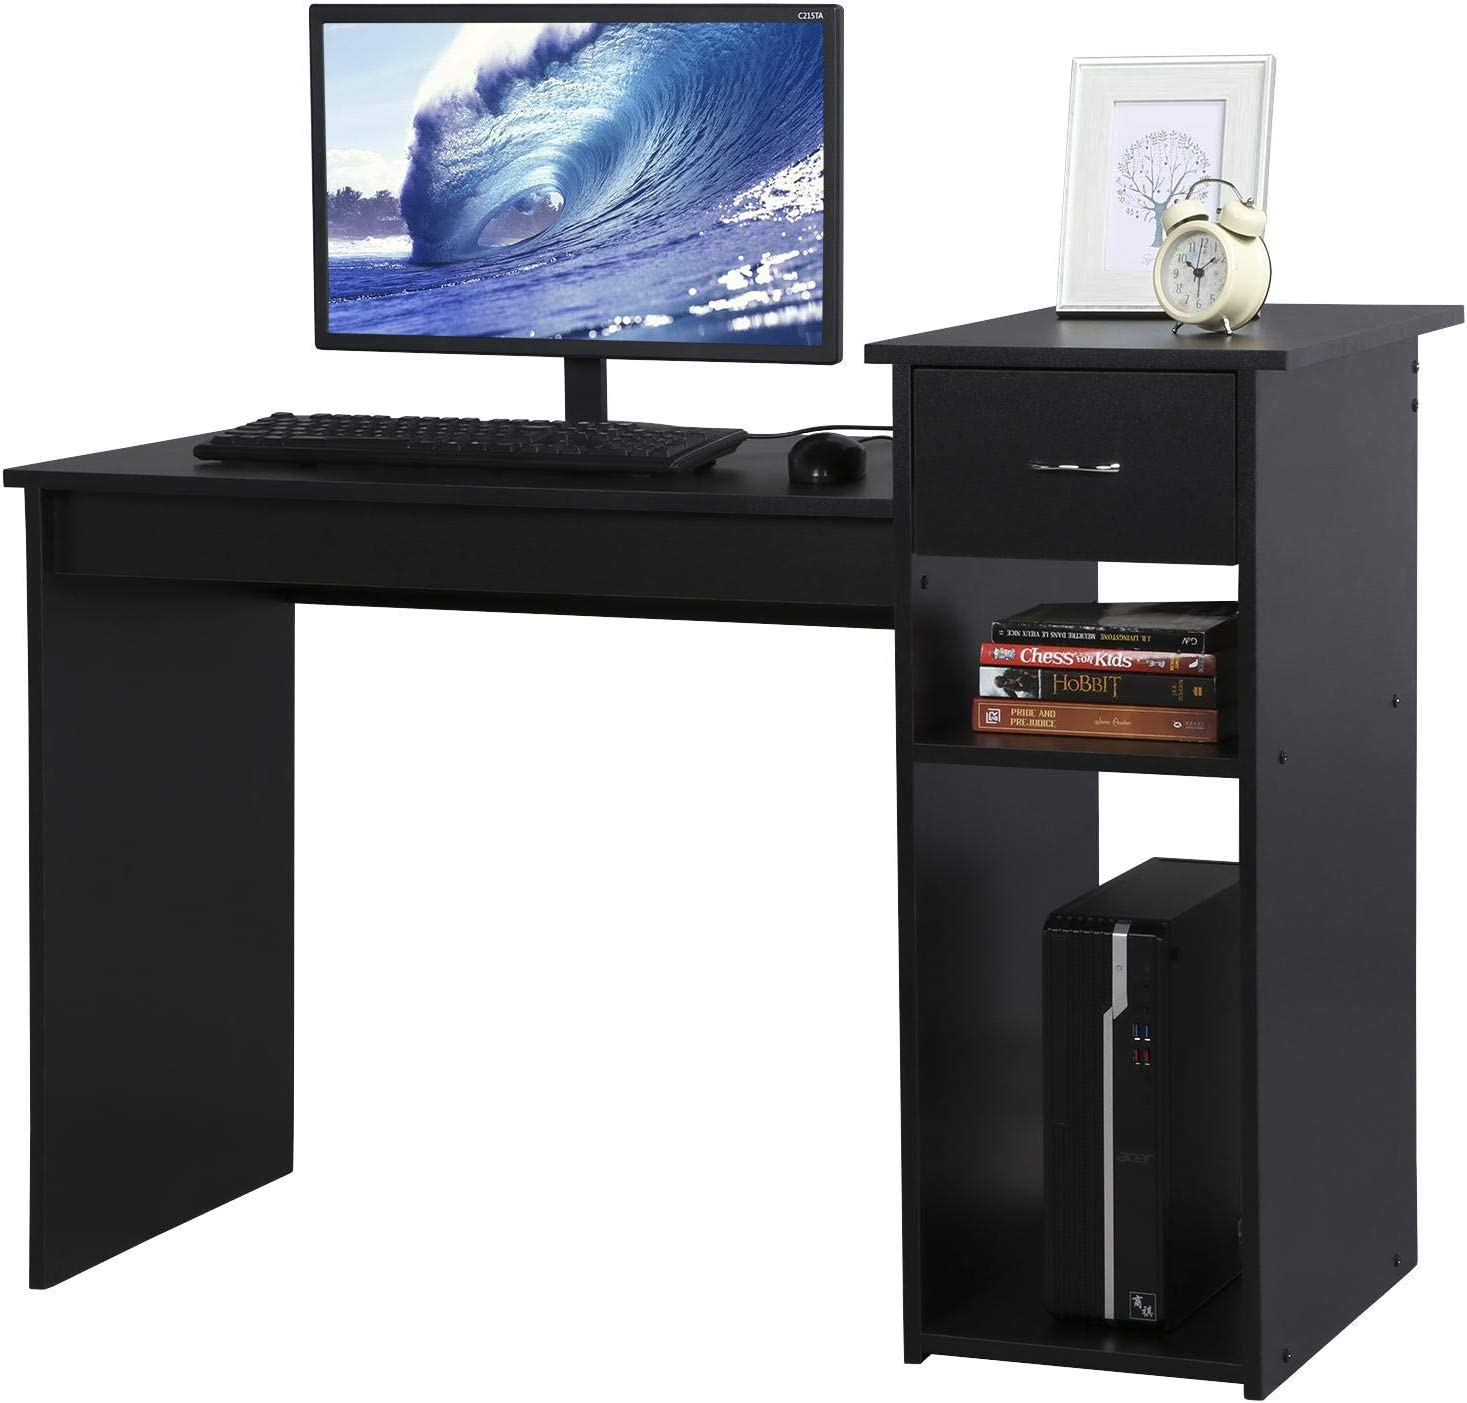 Topeakmart Home Office Computer Desk, Wooden Study Writing Table with Drawer and Storage Shelves Black